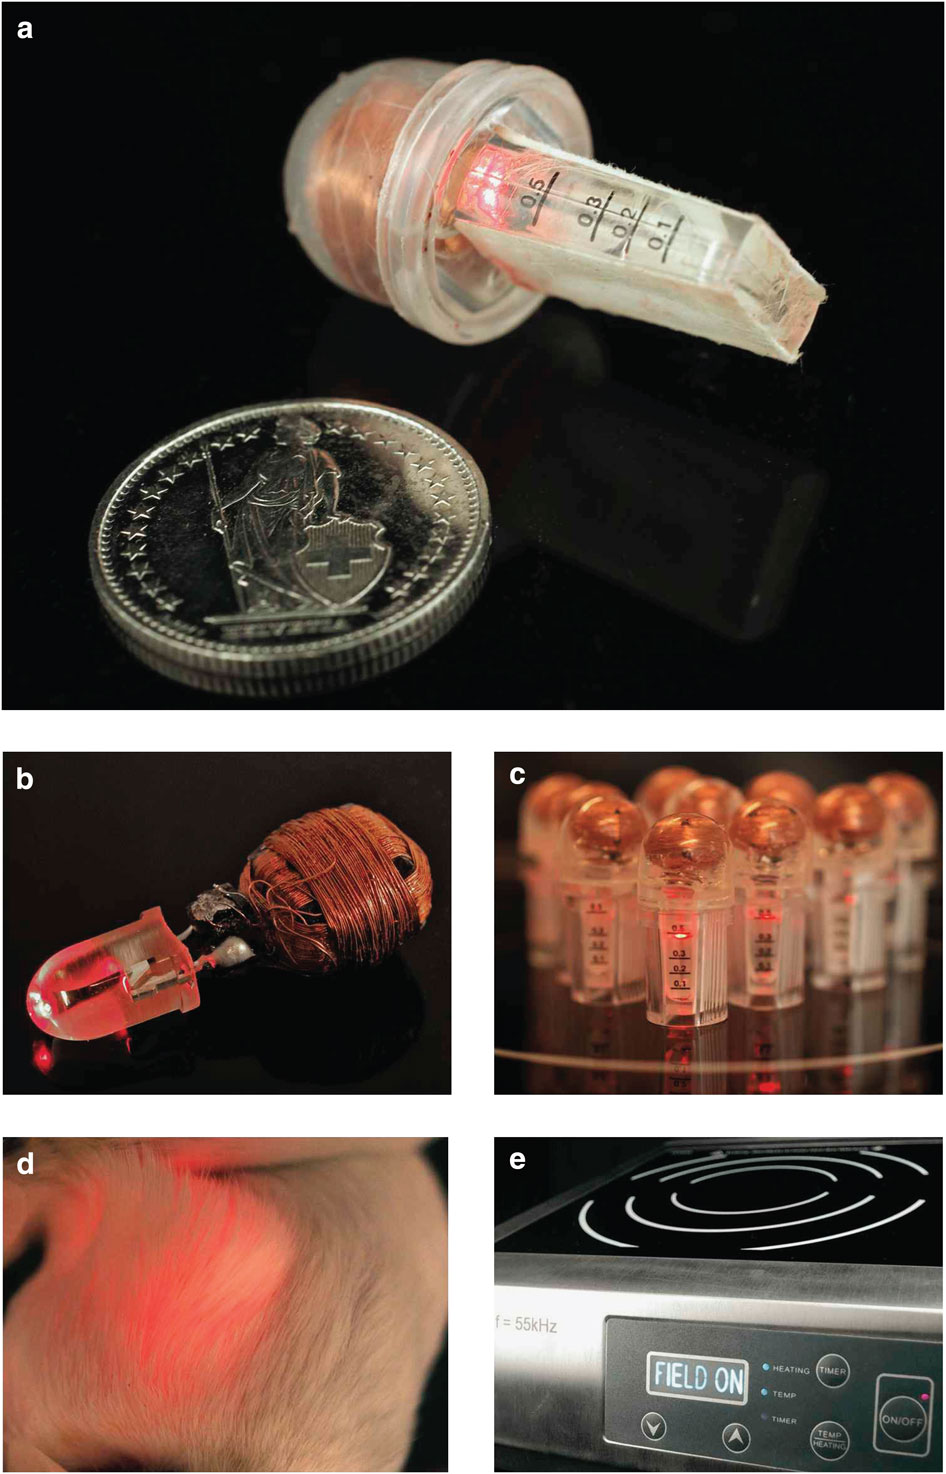 Wireless-powered optogenetic implant.